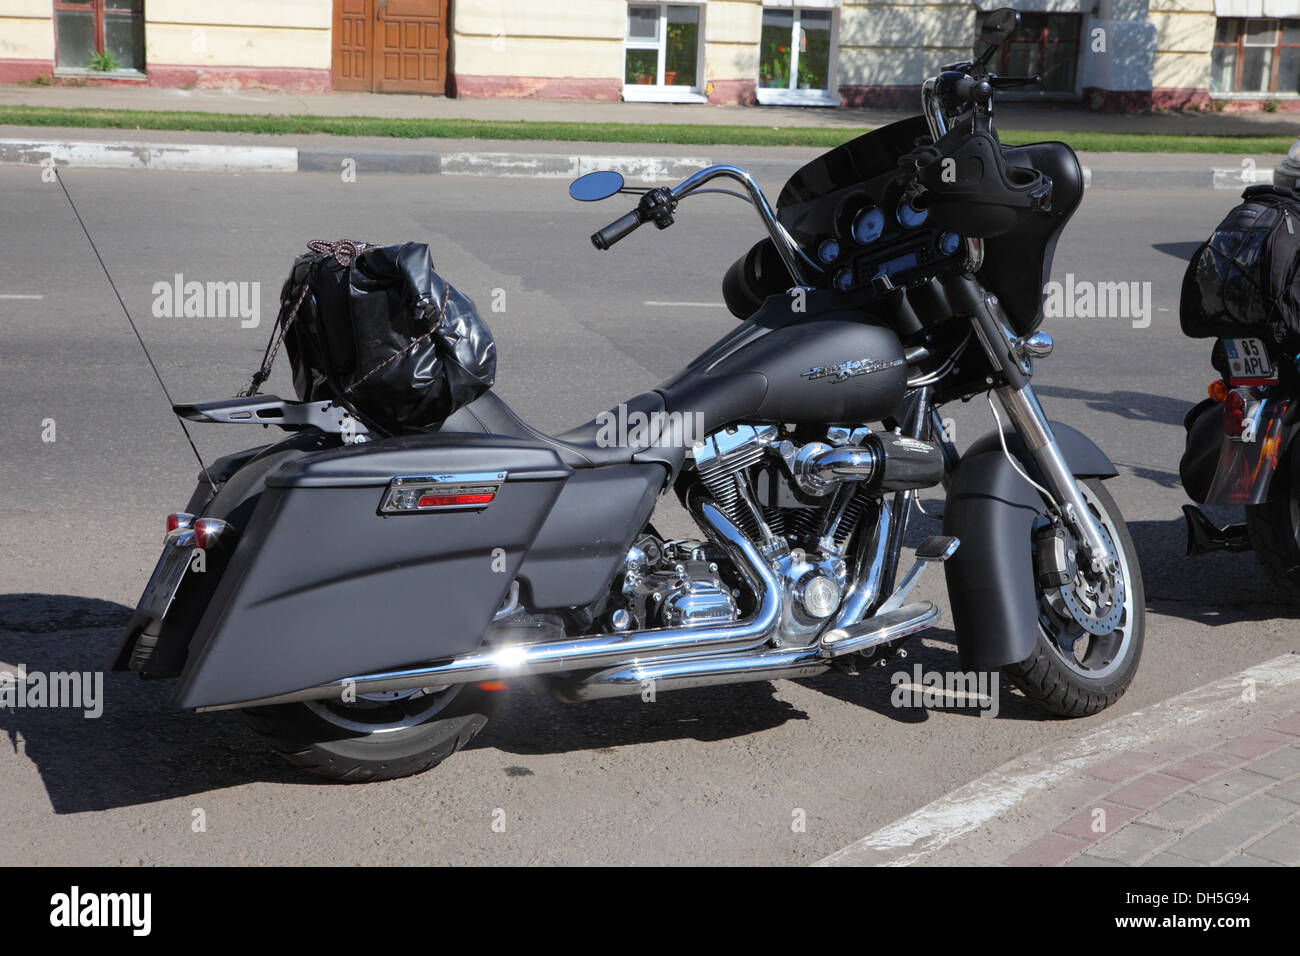 Harley Davidson Stock: Customized Harley Davidson Sportster Stock Photos